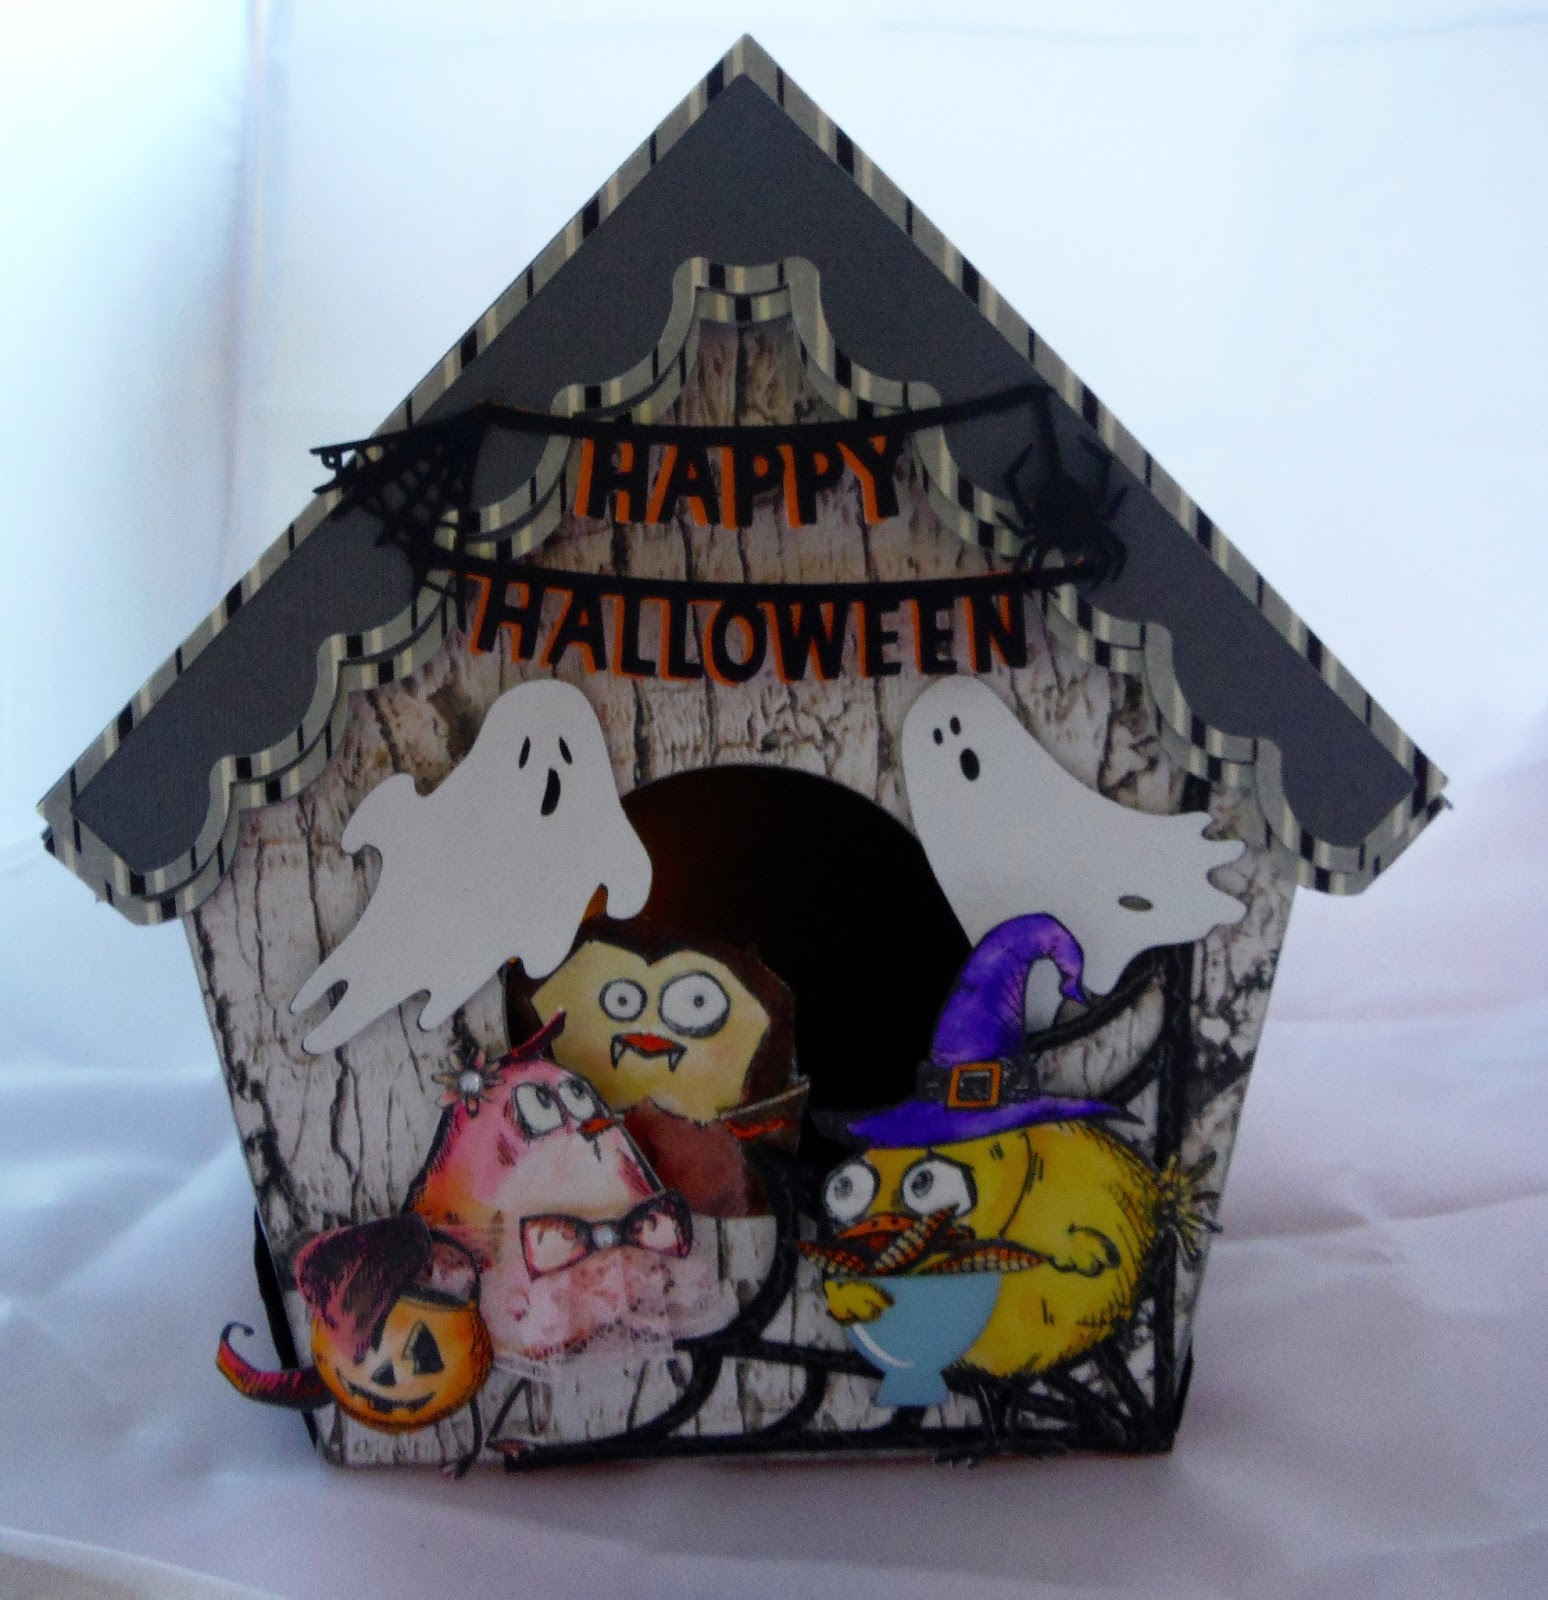 Crazy Halloween Decorations: She's A Sassy Lady: Bird Crazy Halloween Birdhouse